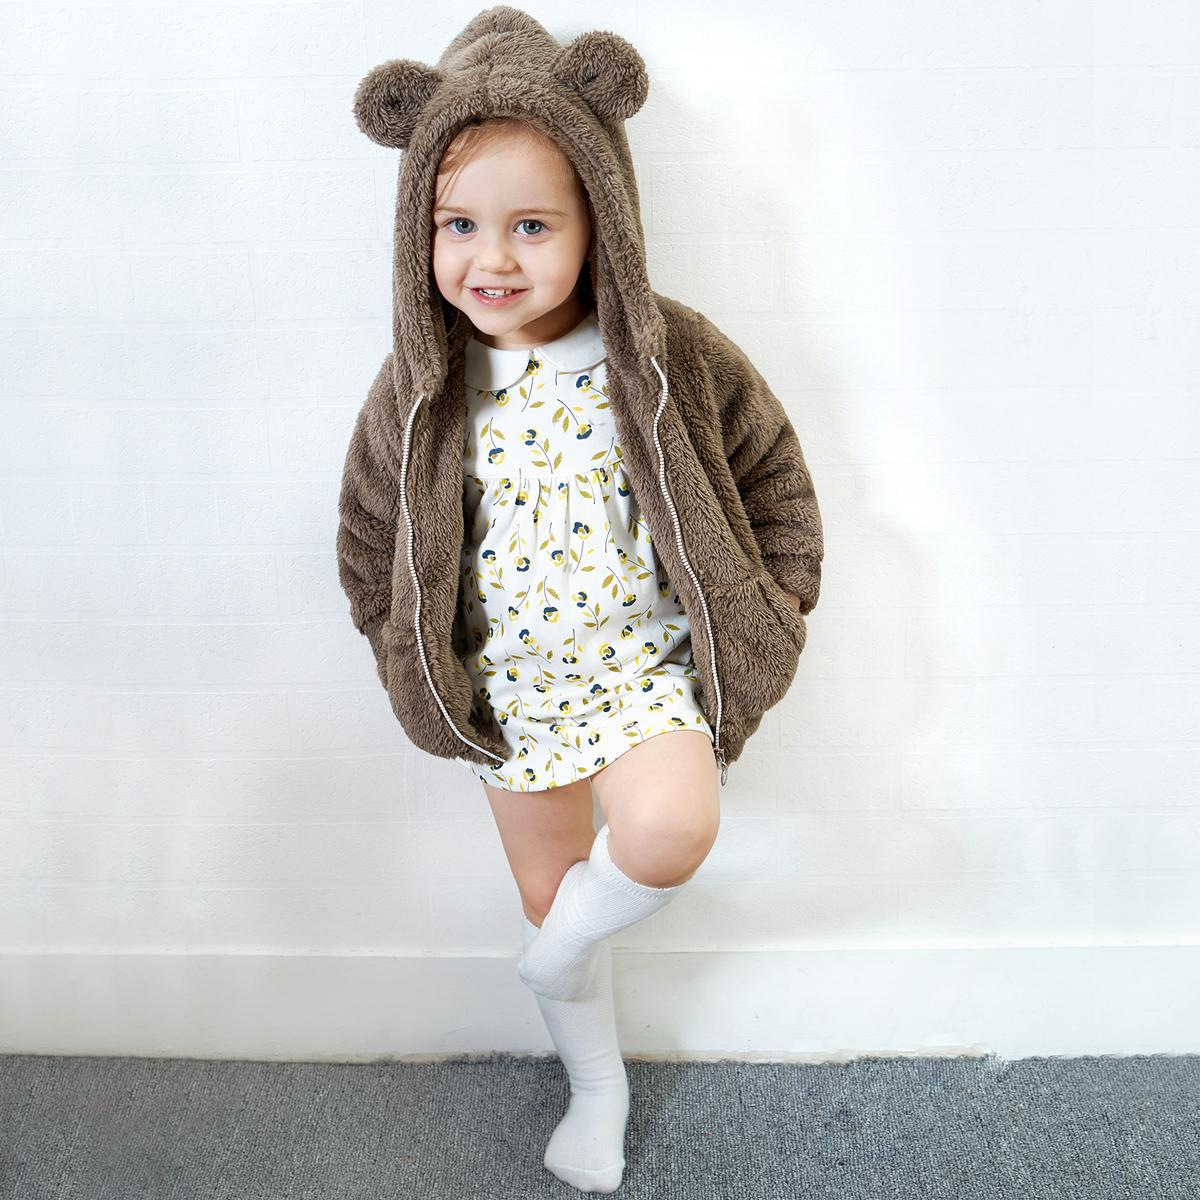 Yingzifang New Autumn Winter Baby Coat Boys Girls Cotton Cute Bear Jaket Parka Blazer Canvas Hooded Casual Kids Jacket Children Clothing Sports Suit Y18102508 Jackets